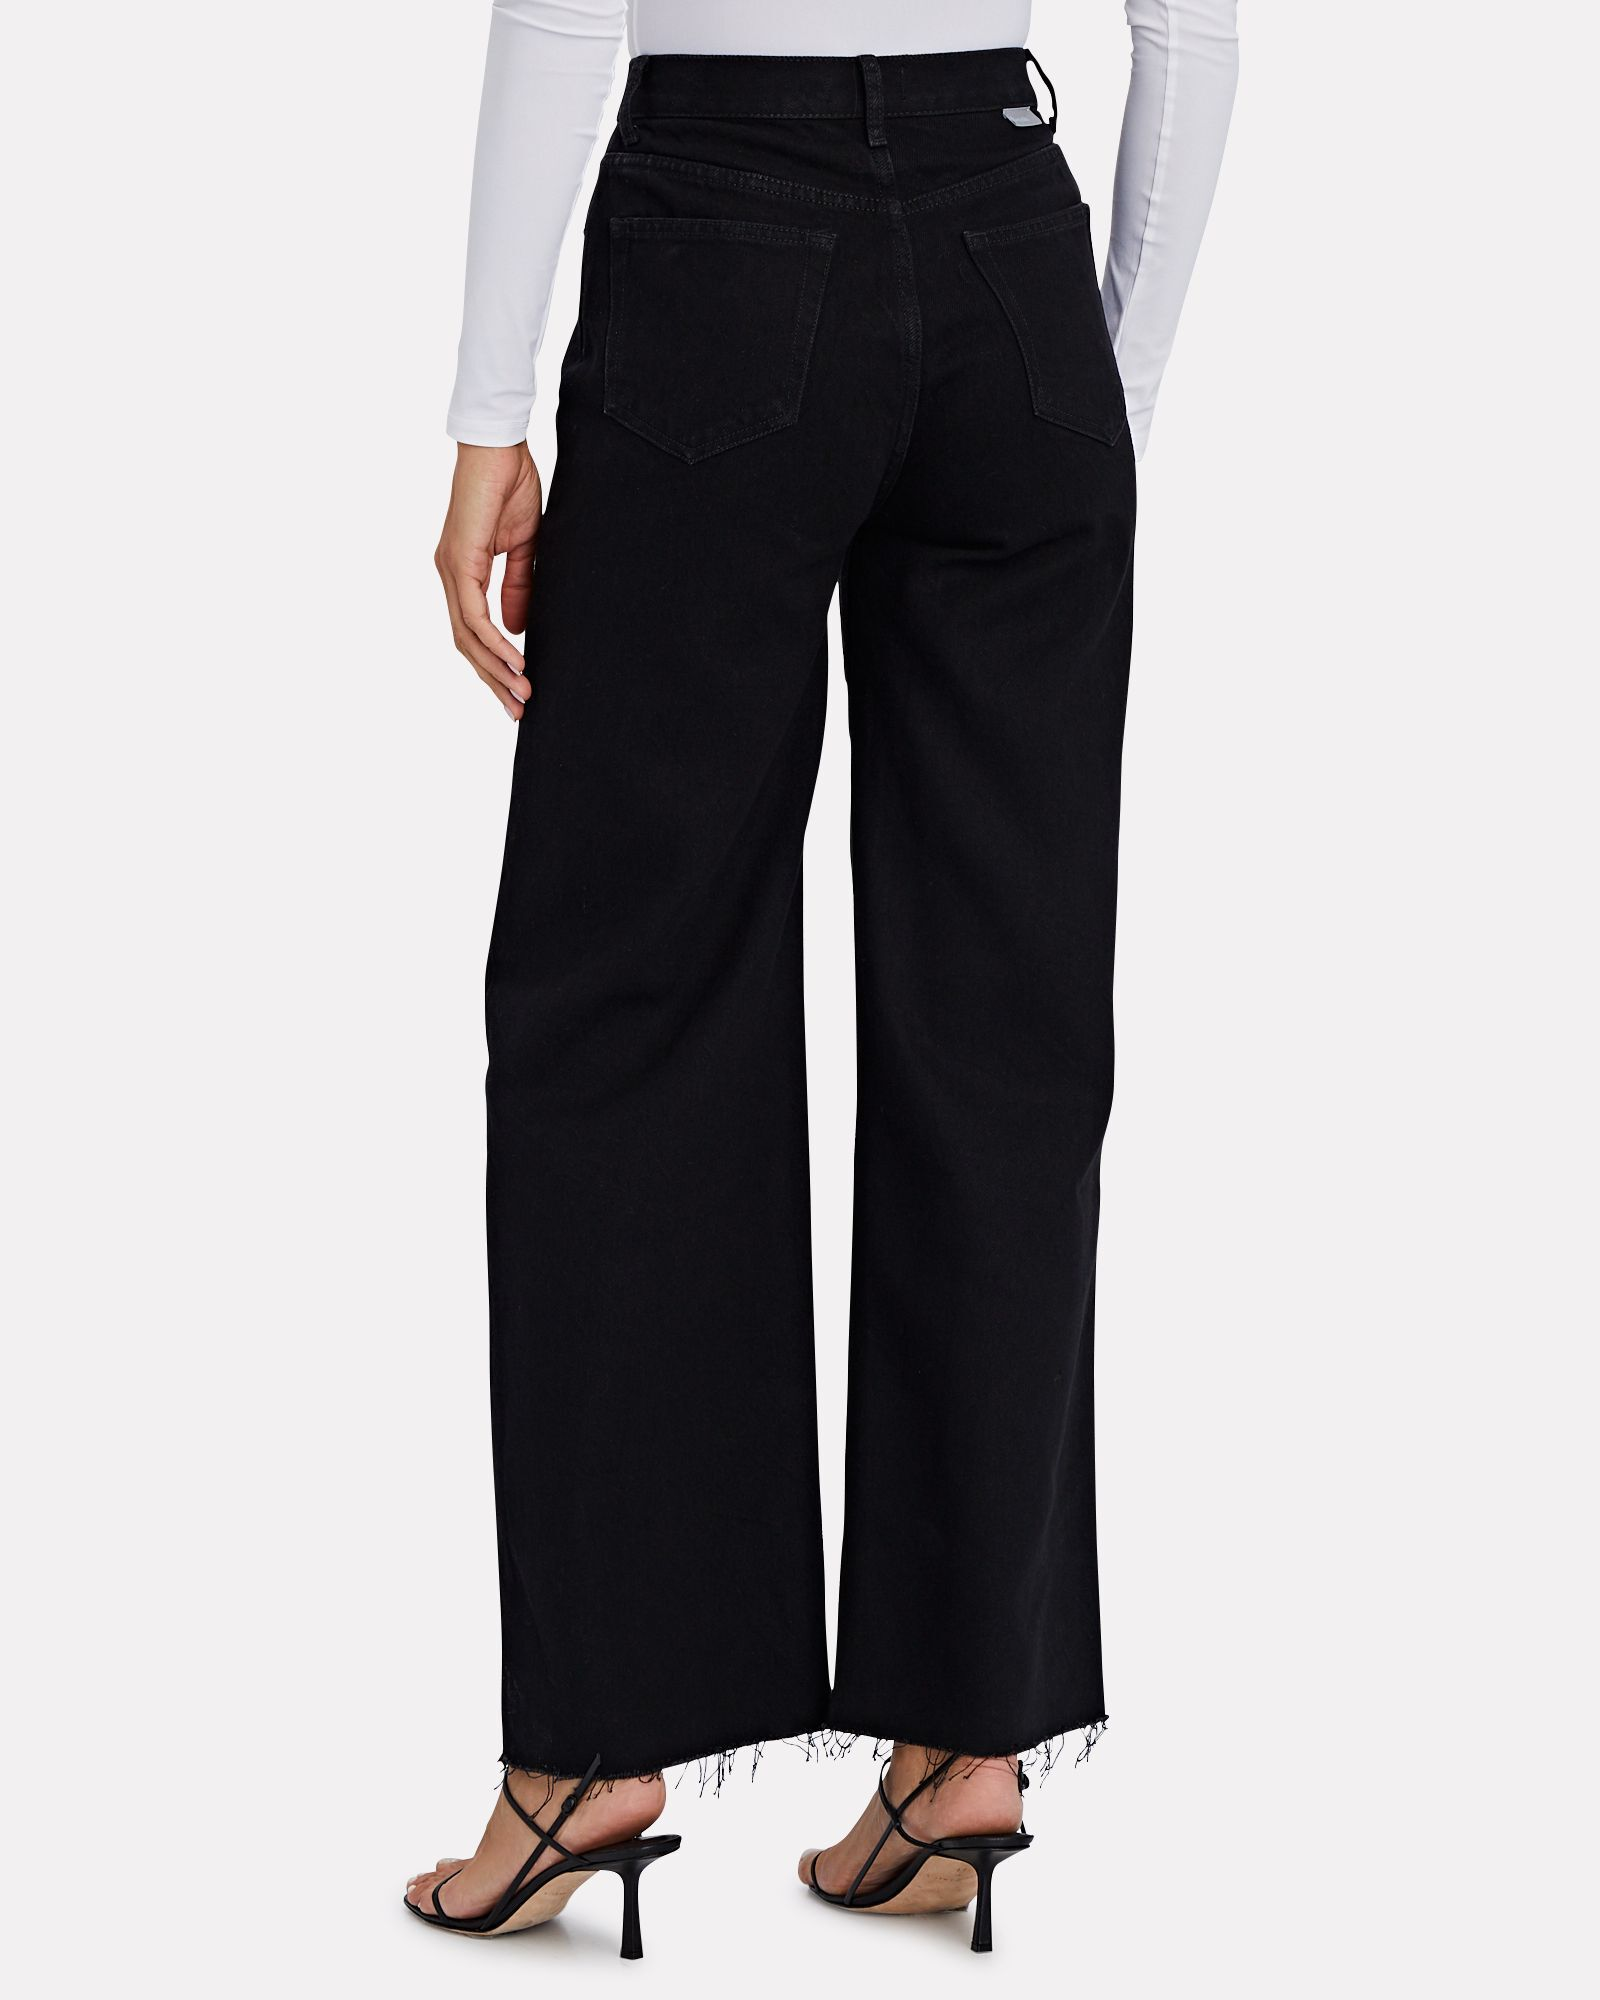 Charley Flared Wide-Leg Jeans, BLACK, hi-res